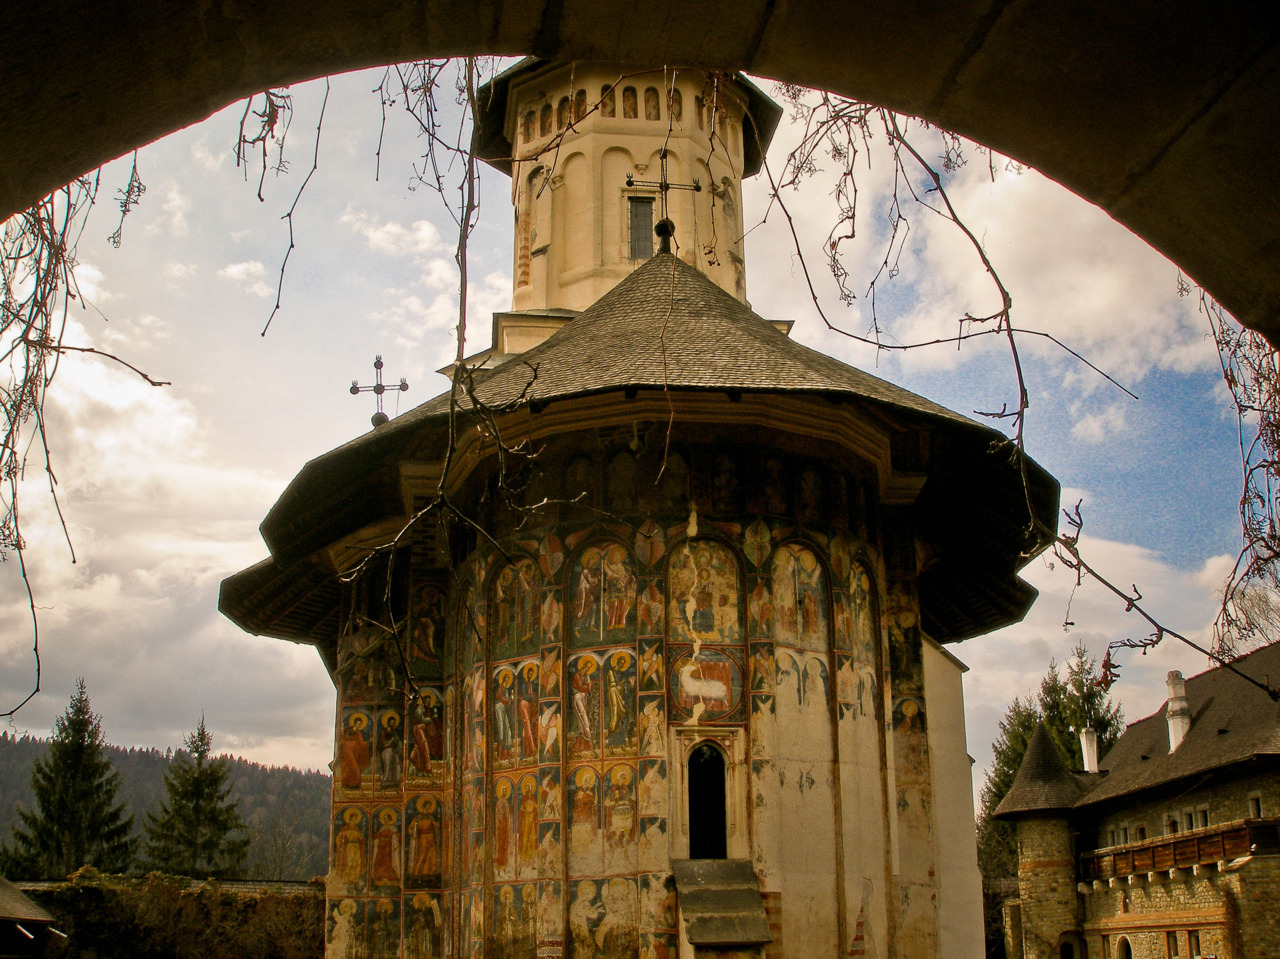 The beautiful Moldovita monastery, in Bucovina, Northern Romania. It is outstanding through the fact that it has gorgeous, well-preserved frescoes on its outer walls, depicting biblical scenes. It was built in 1532 and it is currently a UNESCO World Heritage Site.